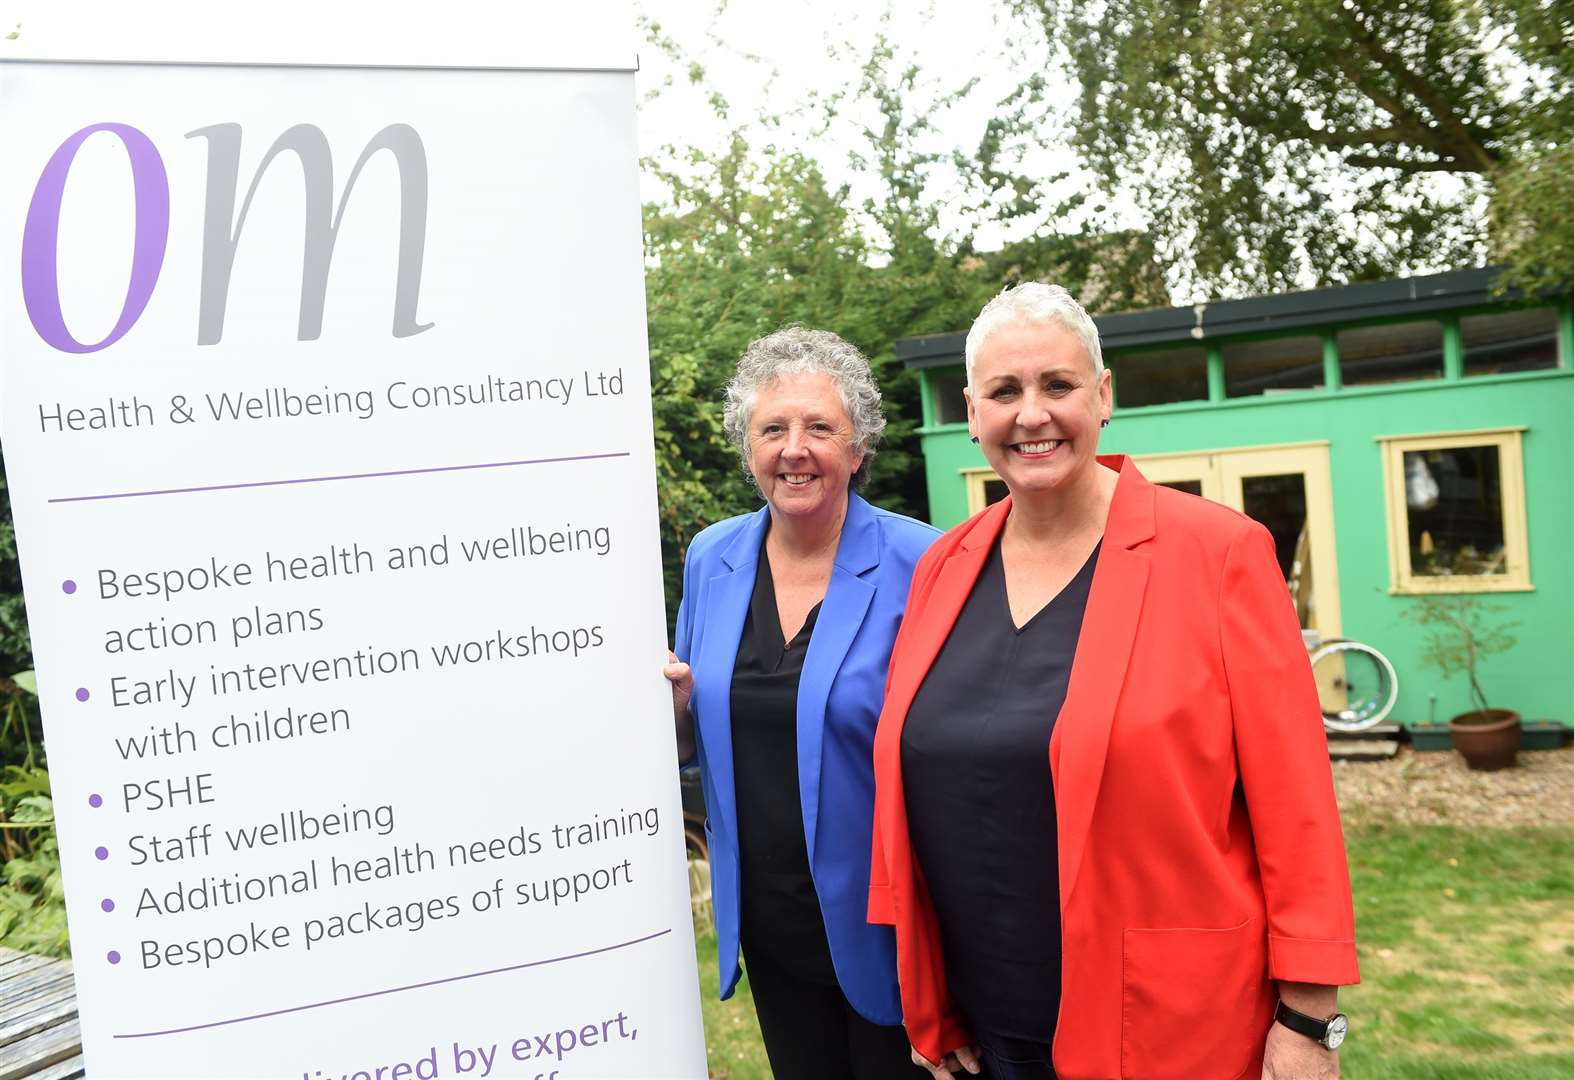 Long Melford wellbeing company earns recognition from ex-Dragon's Den star